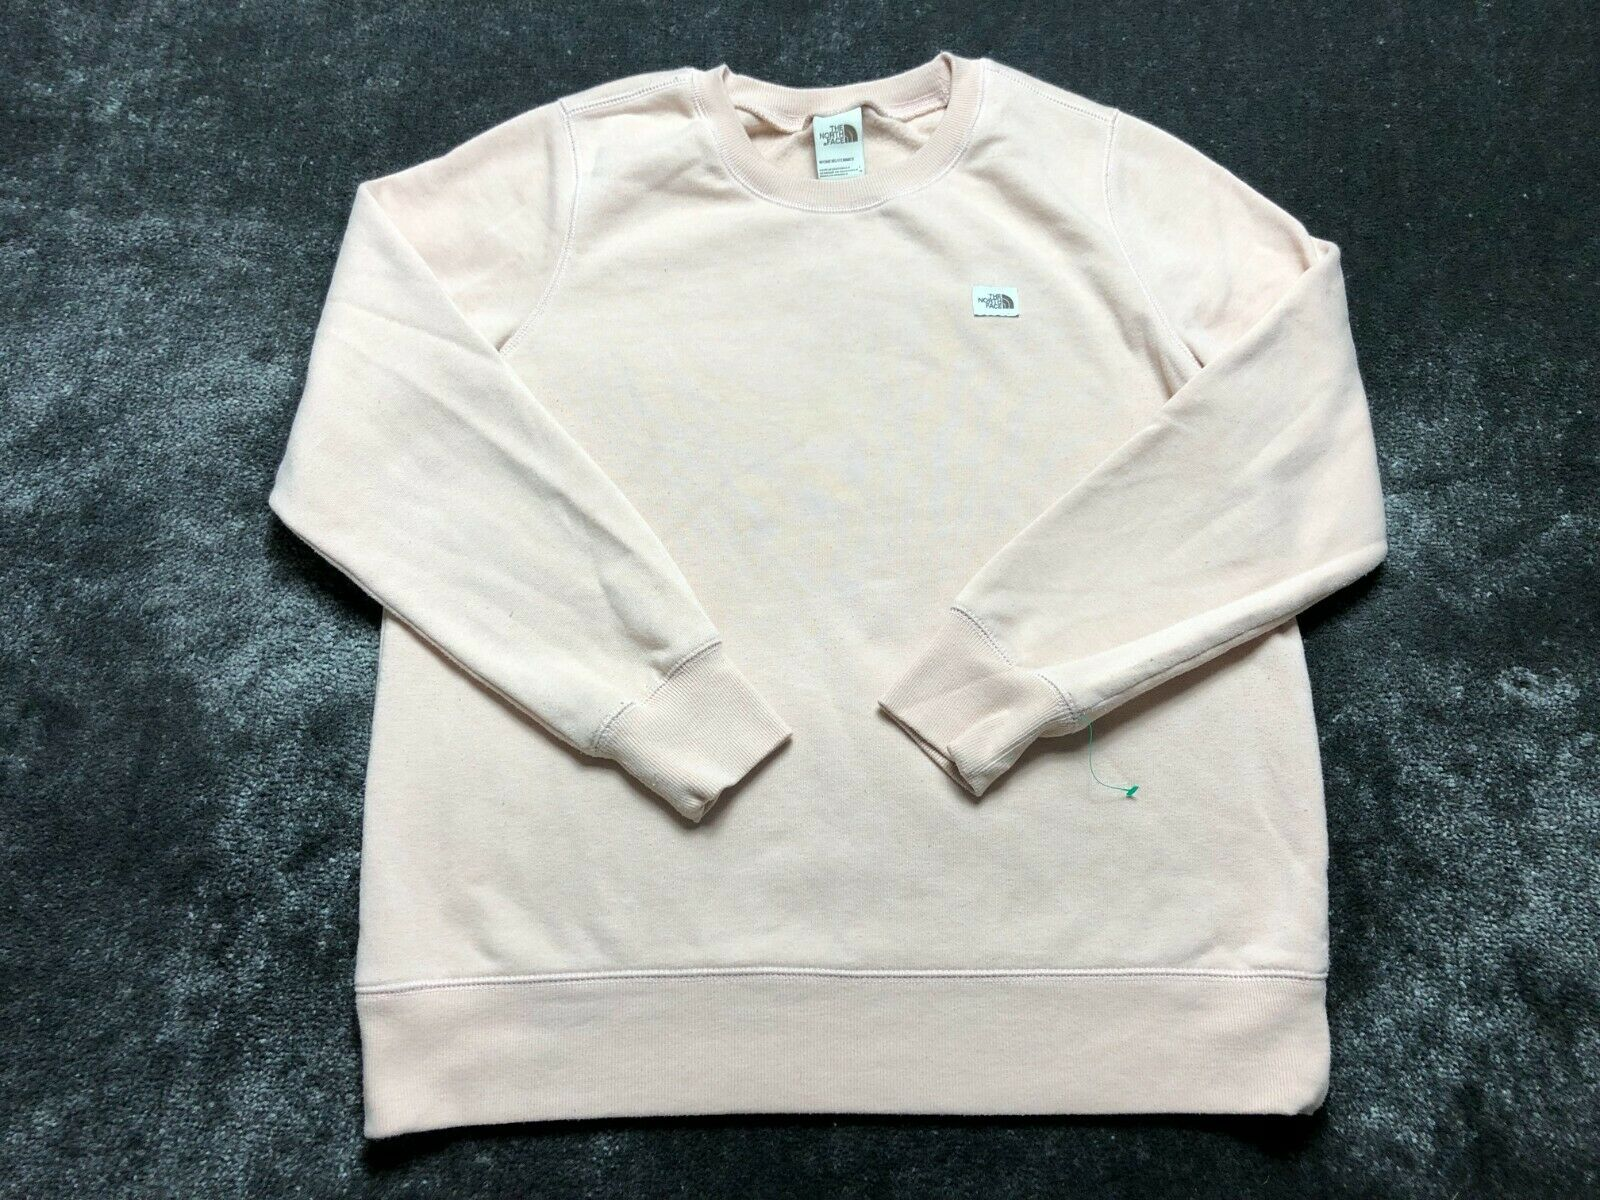 The North Face Women's Pink Crew Neck Pull Over Sweat Shirt Size L Large